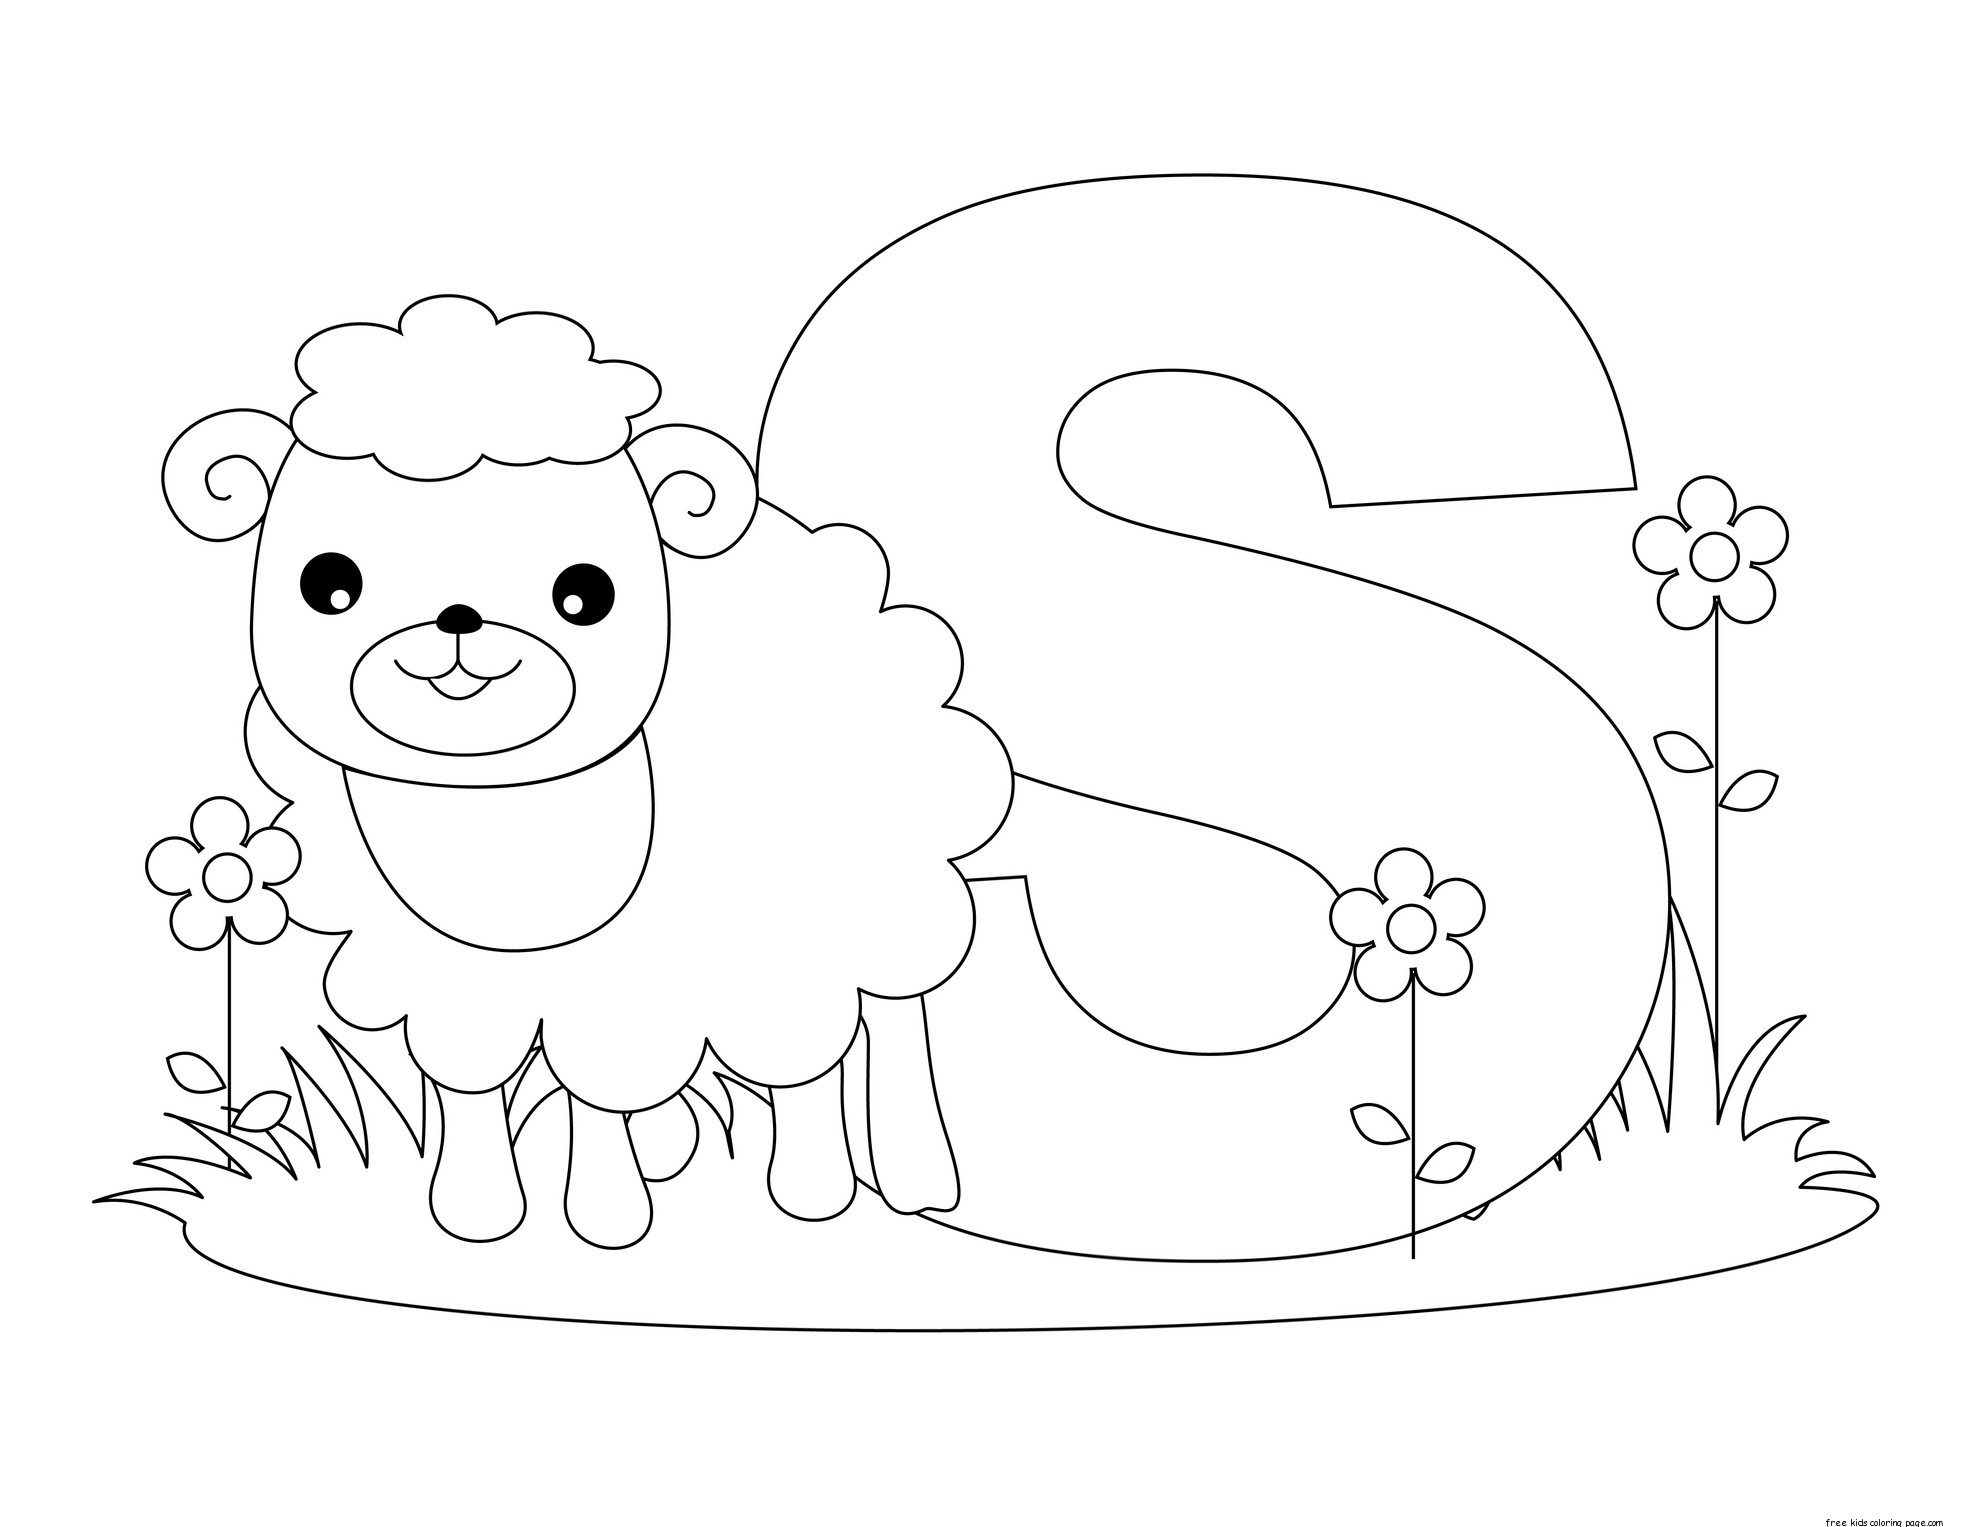 Coloring Pages Animals Letters : Printable animal alphabet letter s is for sheep